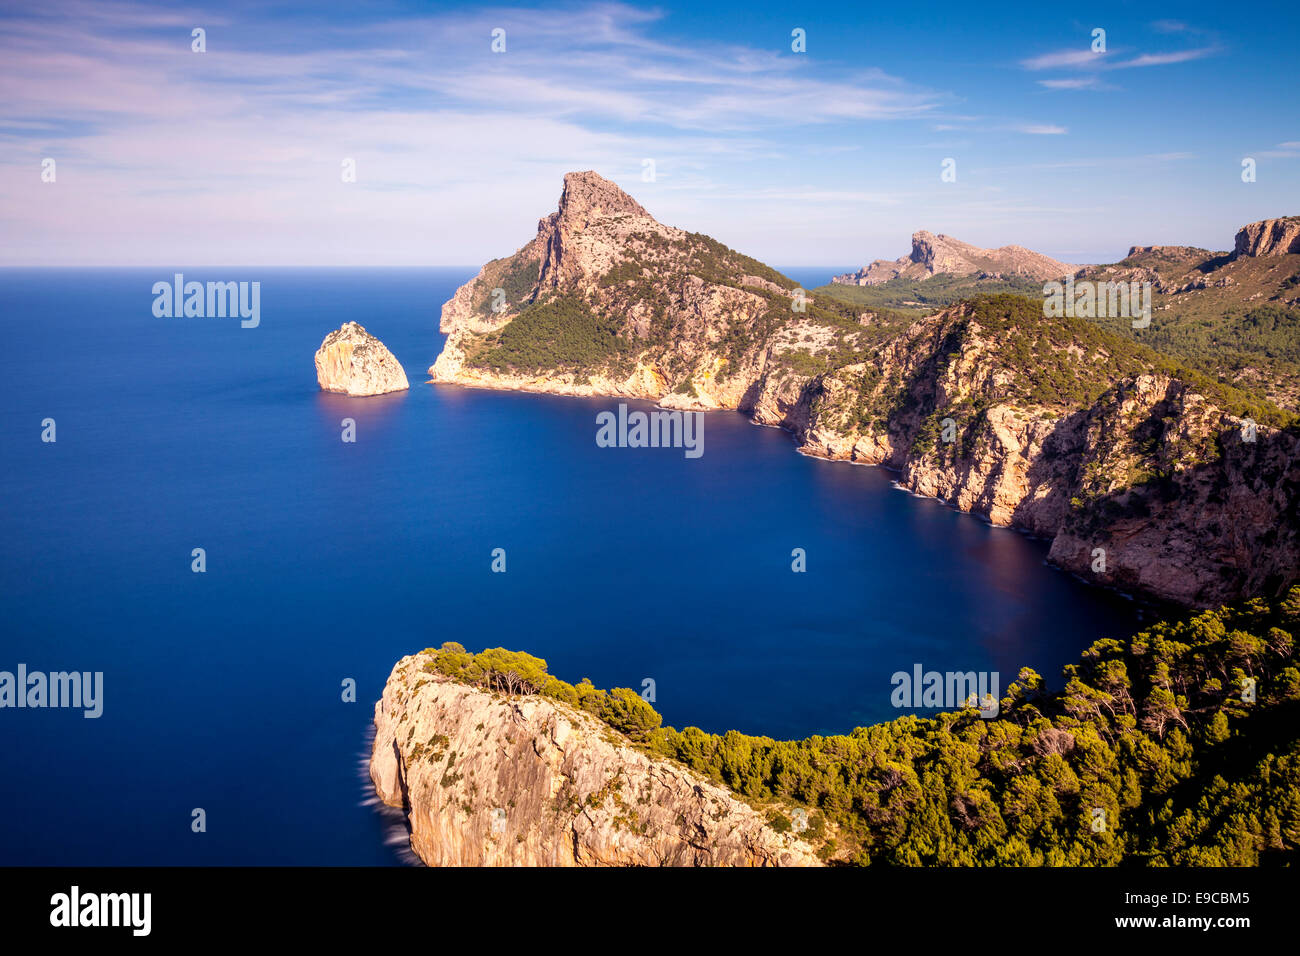 Formentor Viewpoint, Mallorca - Spain - Stock Image